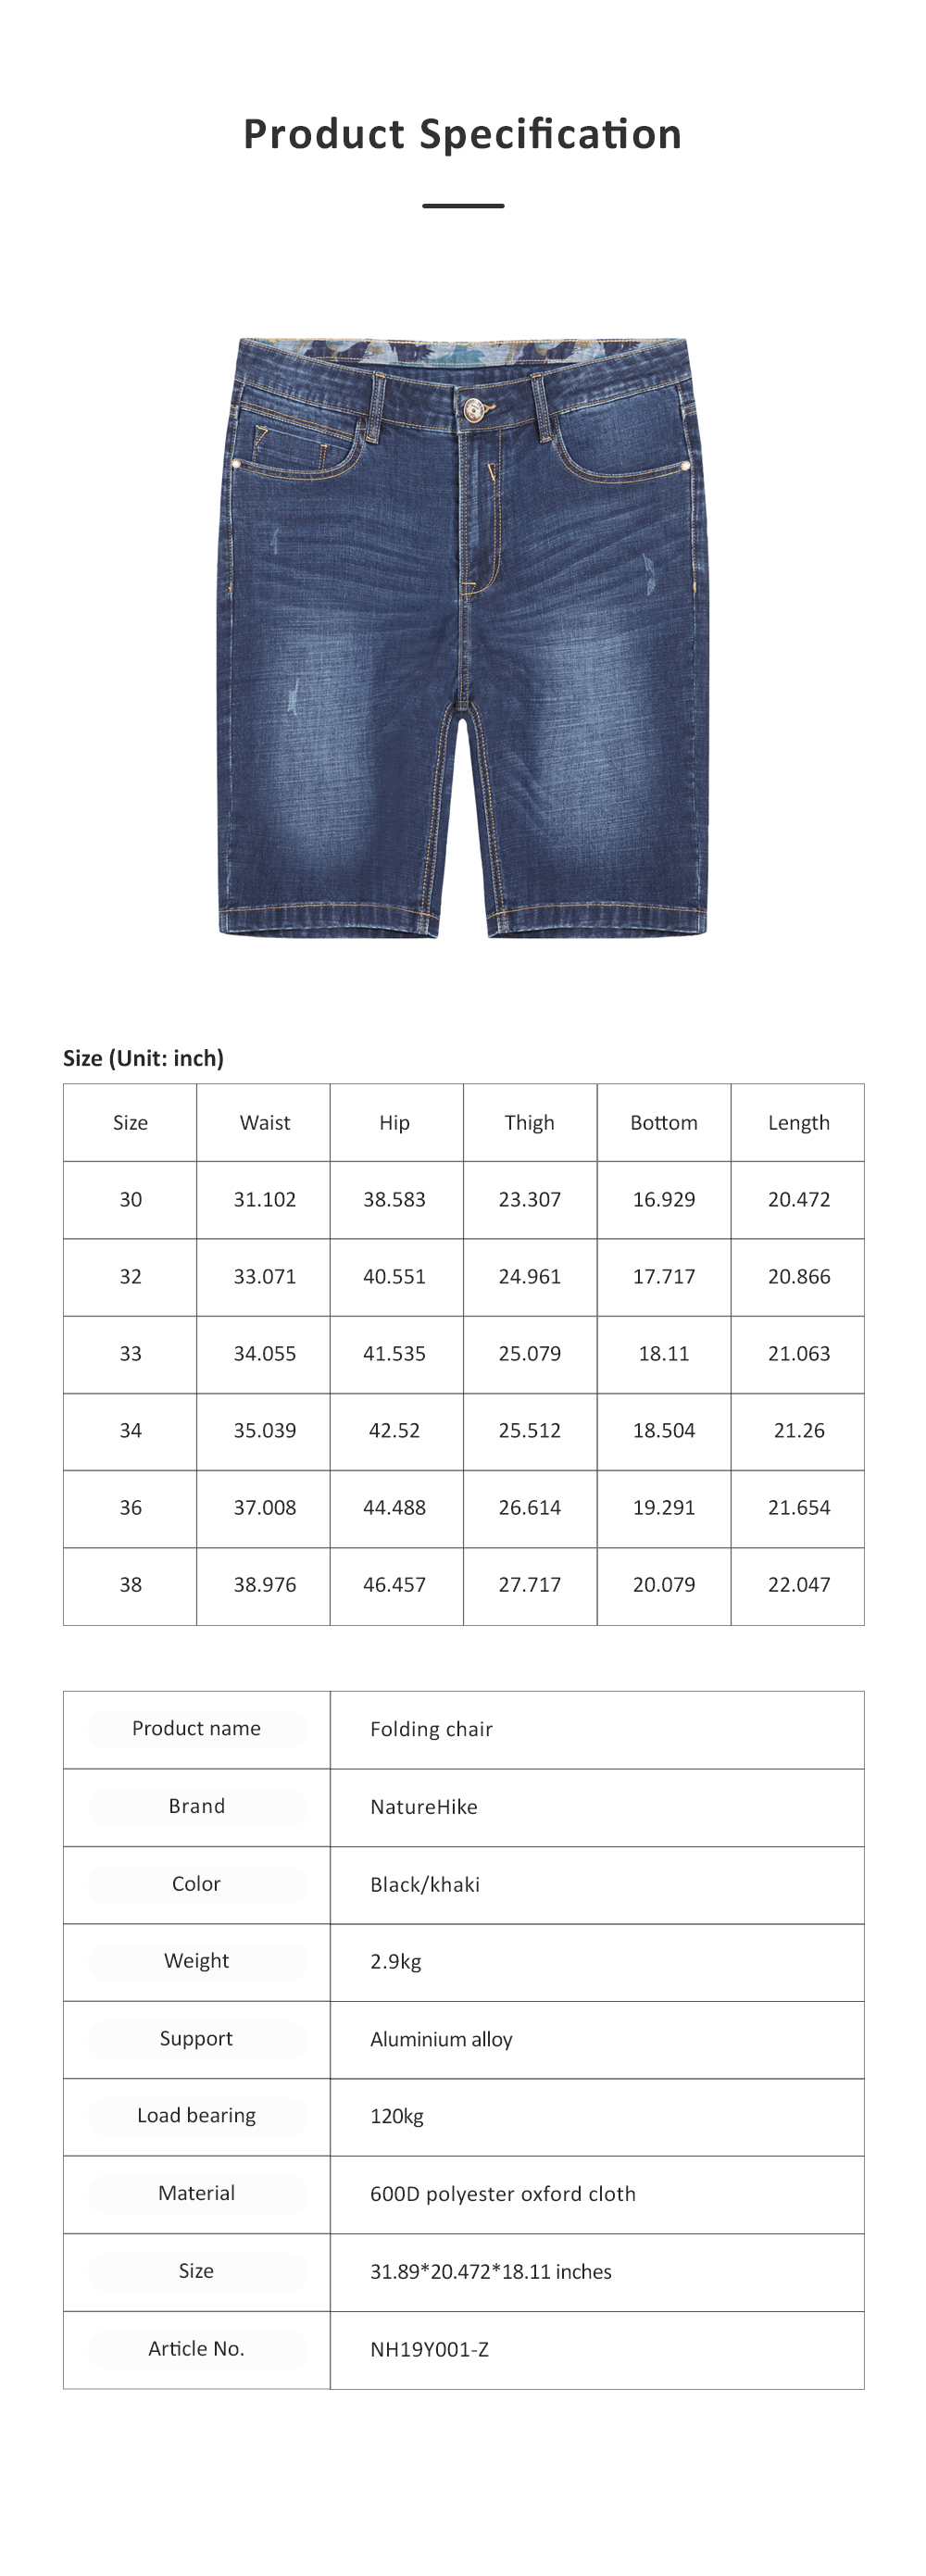 2019 New Leisure Style Loose Denim Shorts, Soft & Comfortable Thin Sports Mid-rise Jeans Pants 6